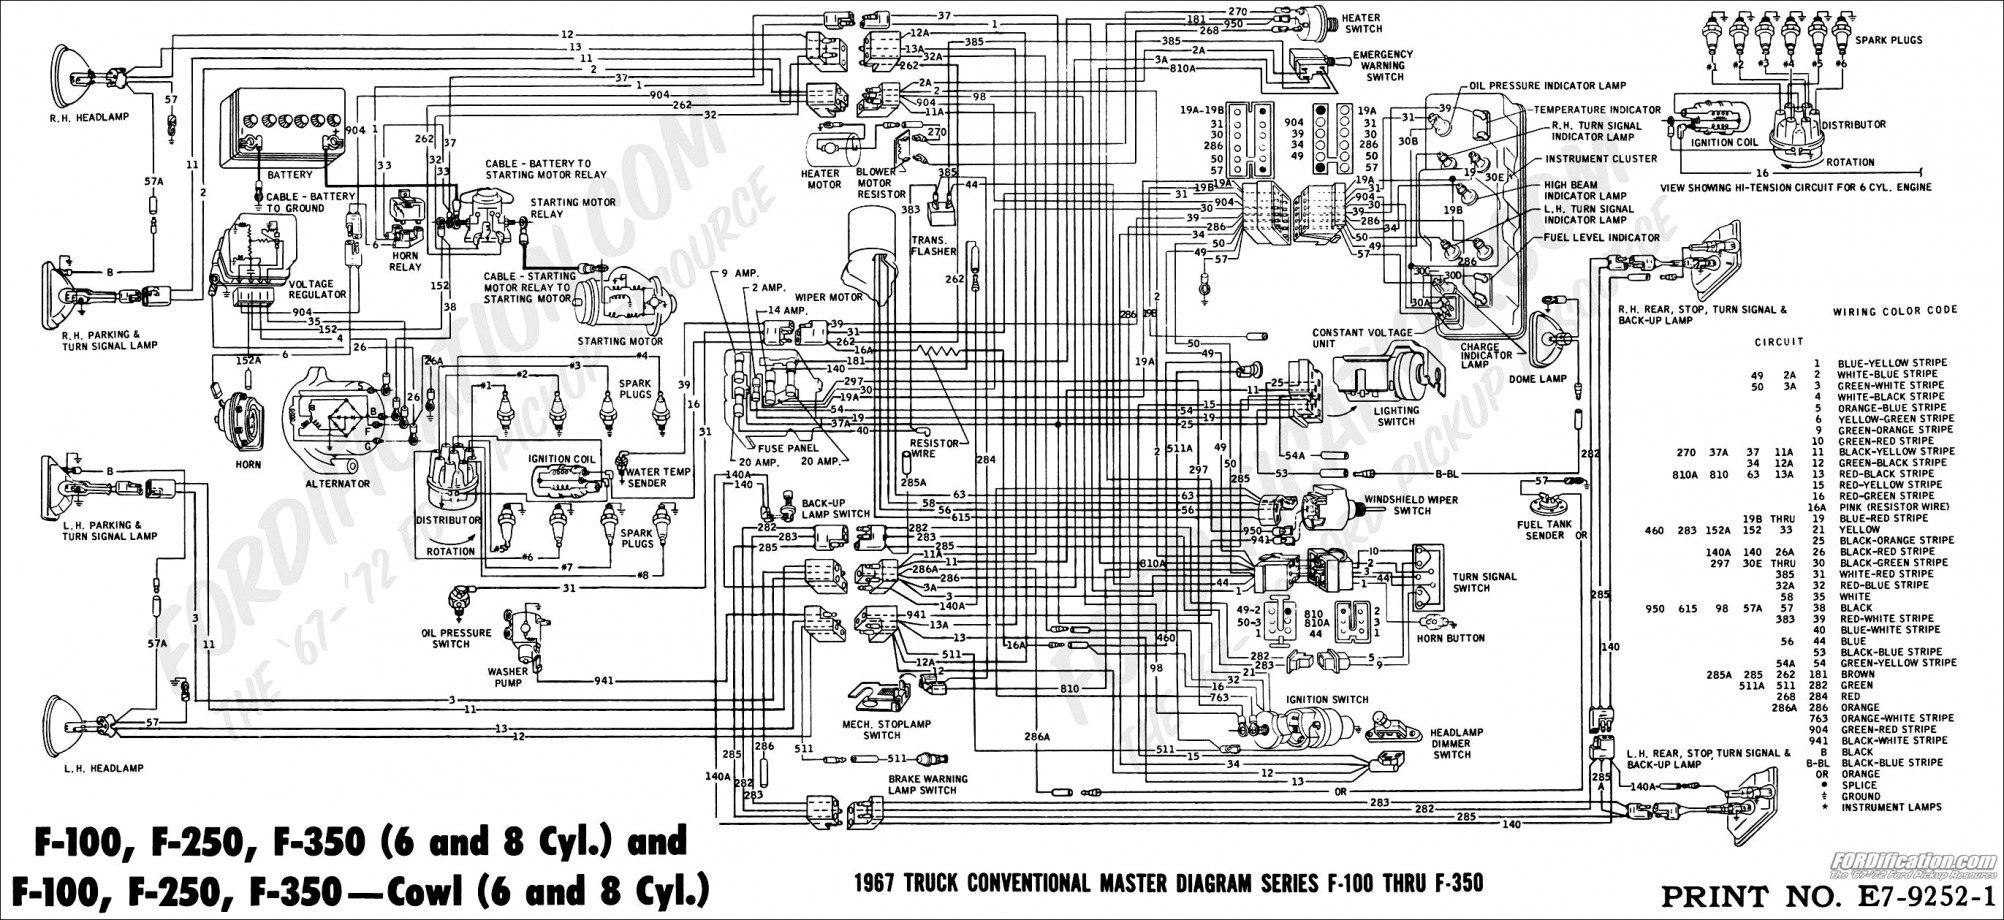 2013 F 150 7 Pin Trailer Wiring Diagram